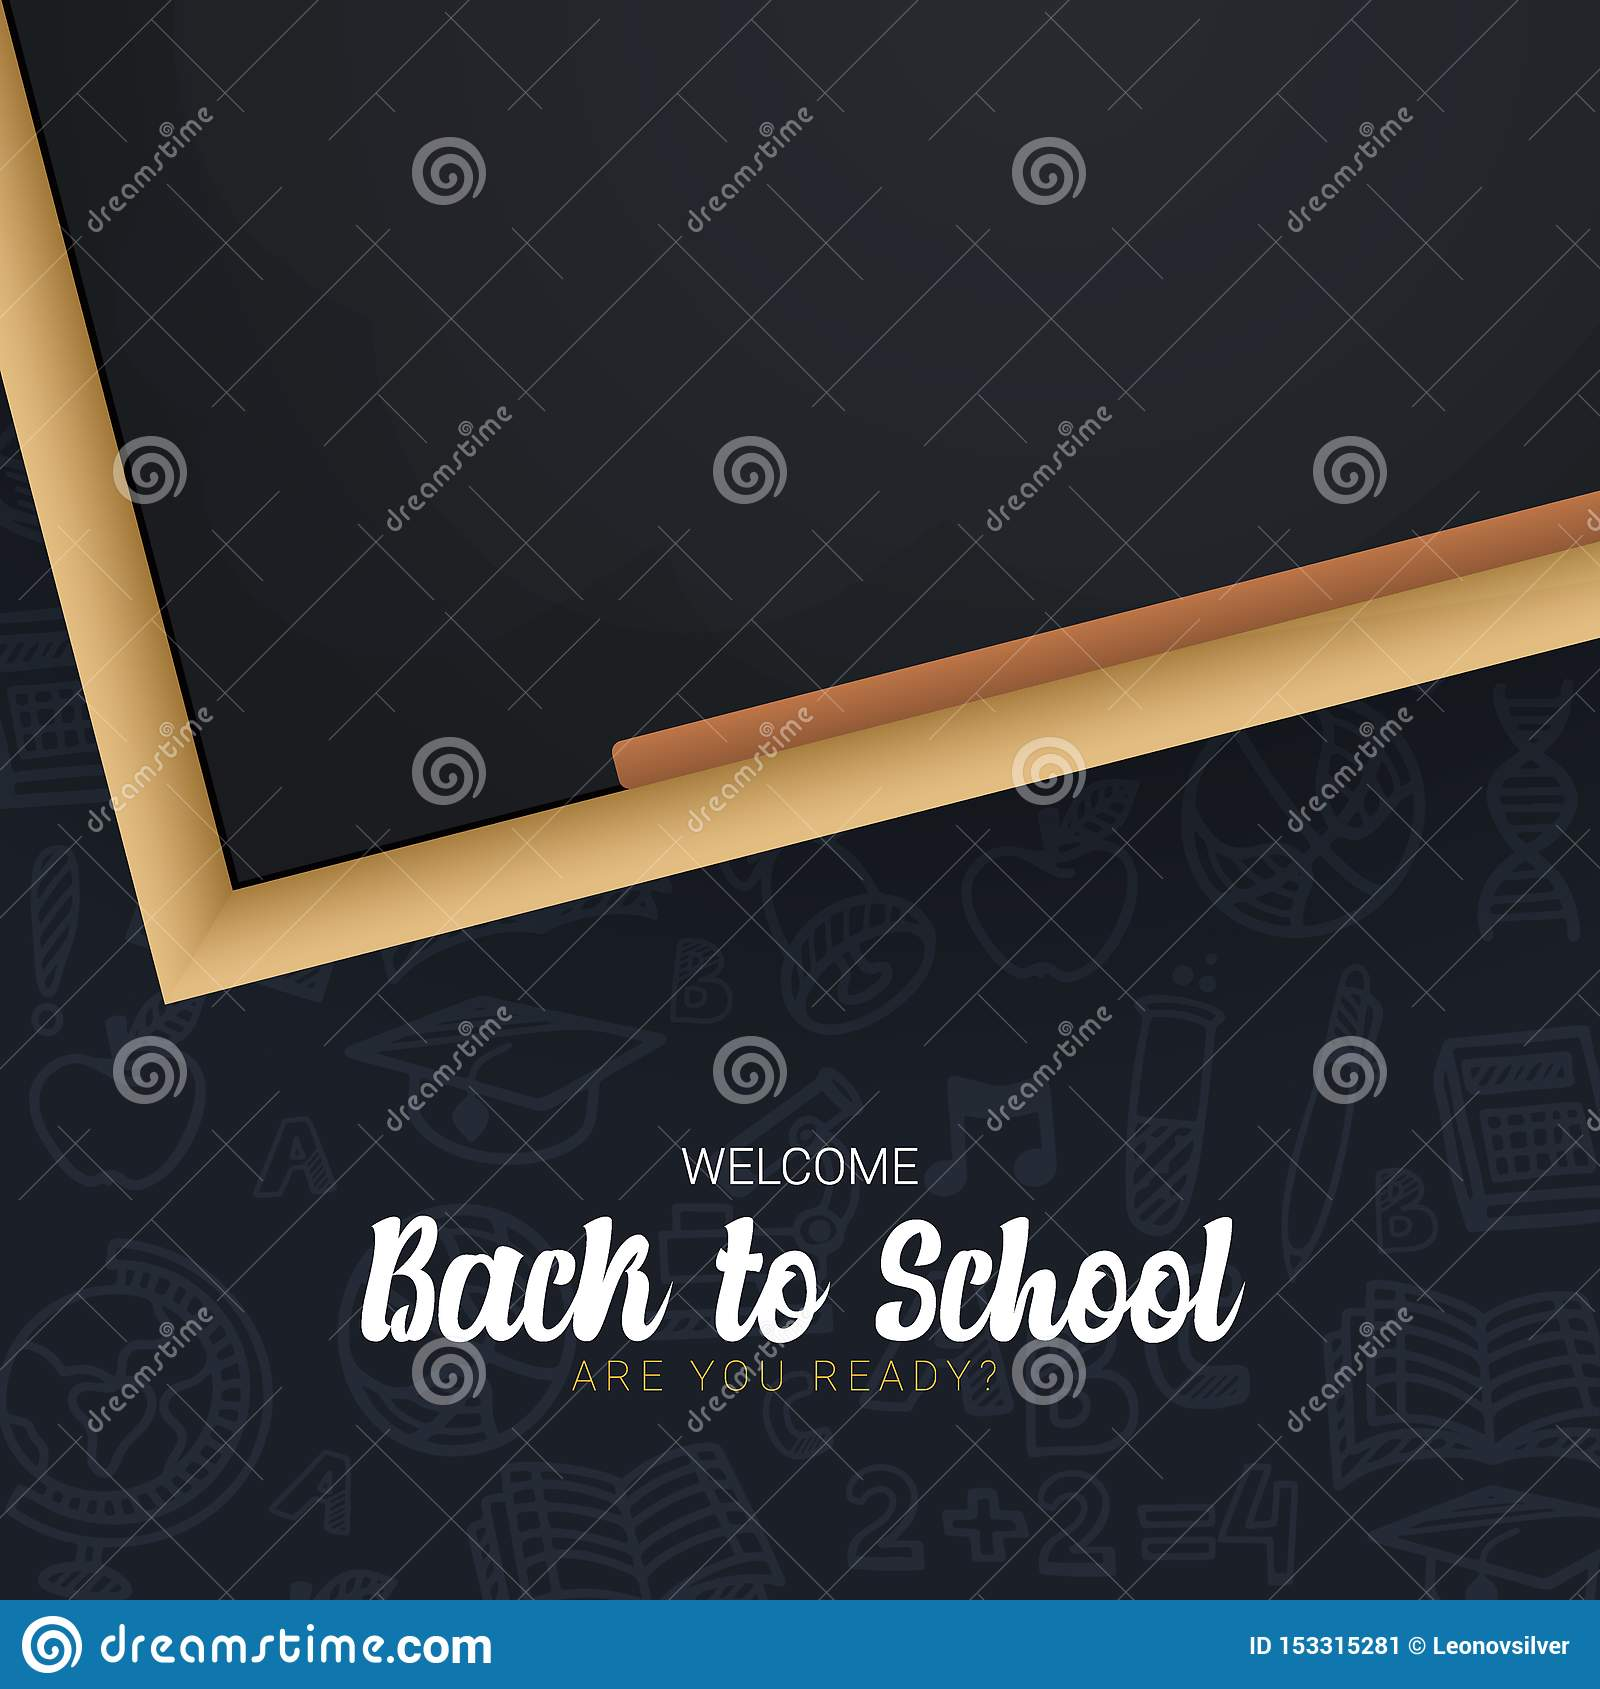 Welcome Back to School banner with chalkboard and dark hand draw doodle background.